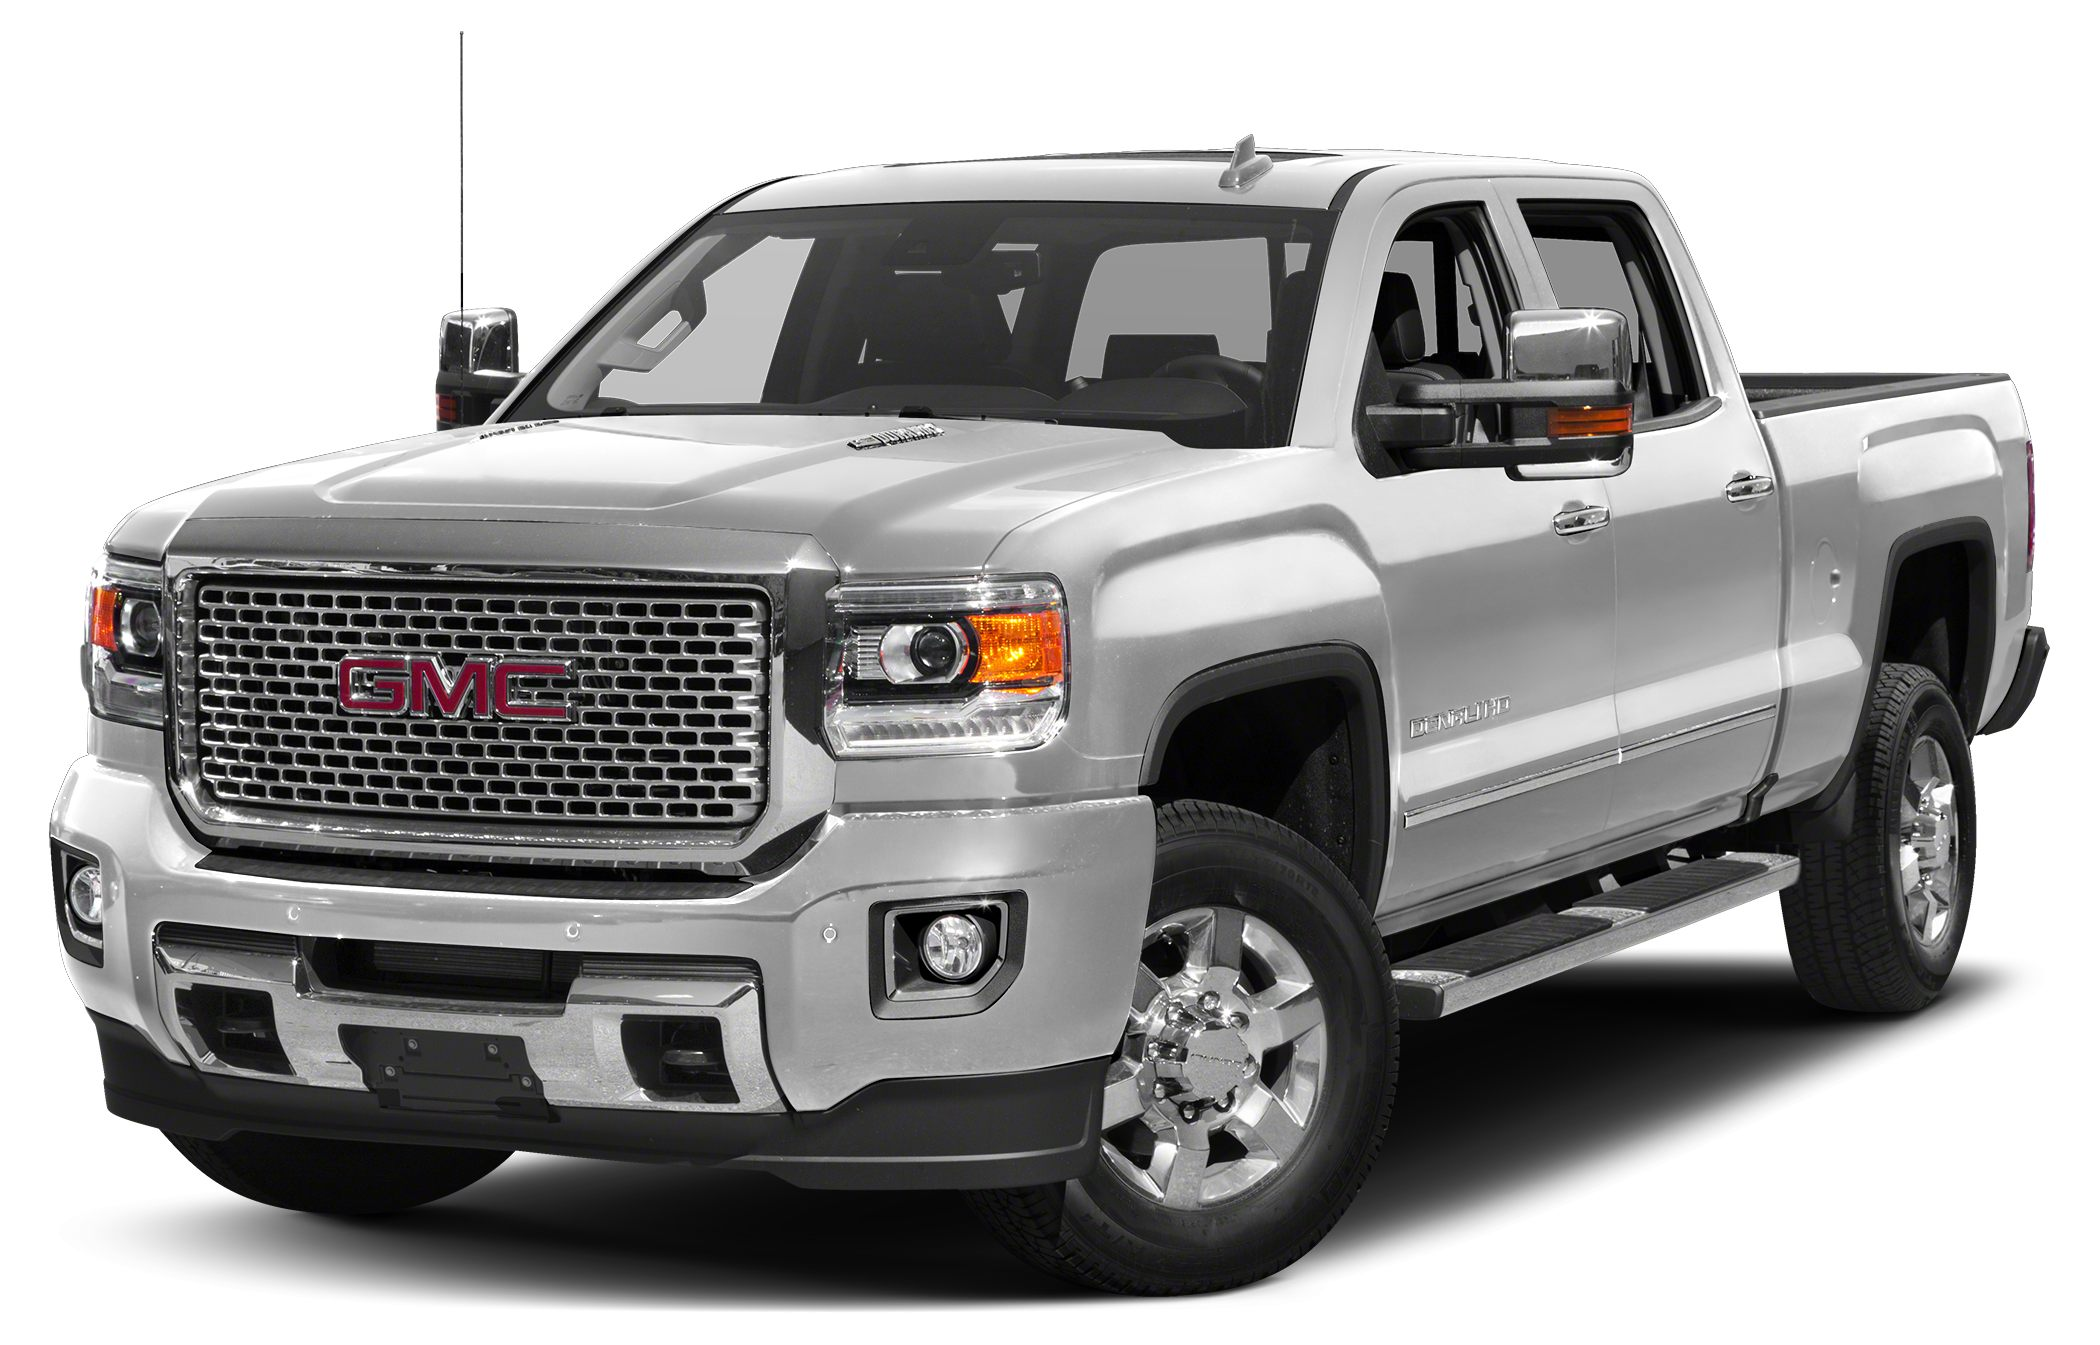 2016 GMC Sierra 3500HD Denali Price includes all applicable rebates See dealer for details Price